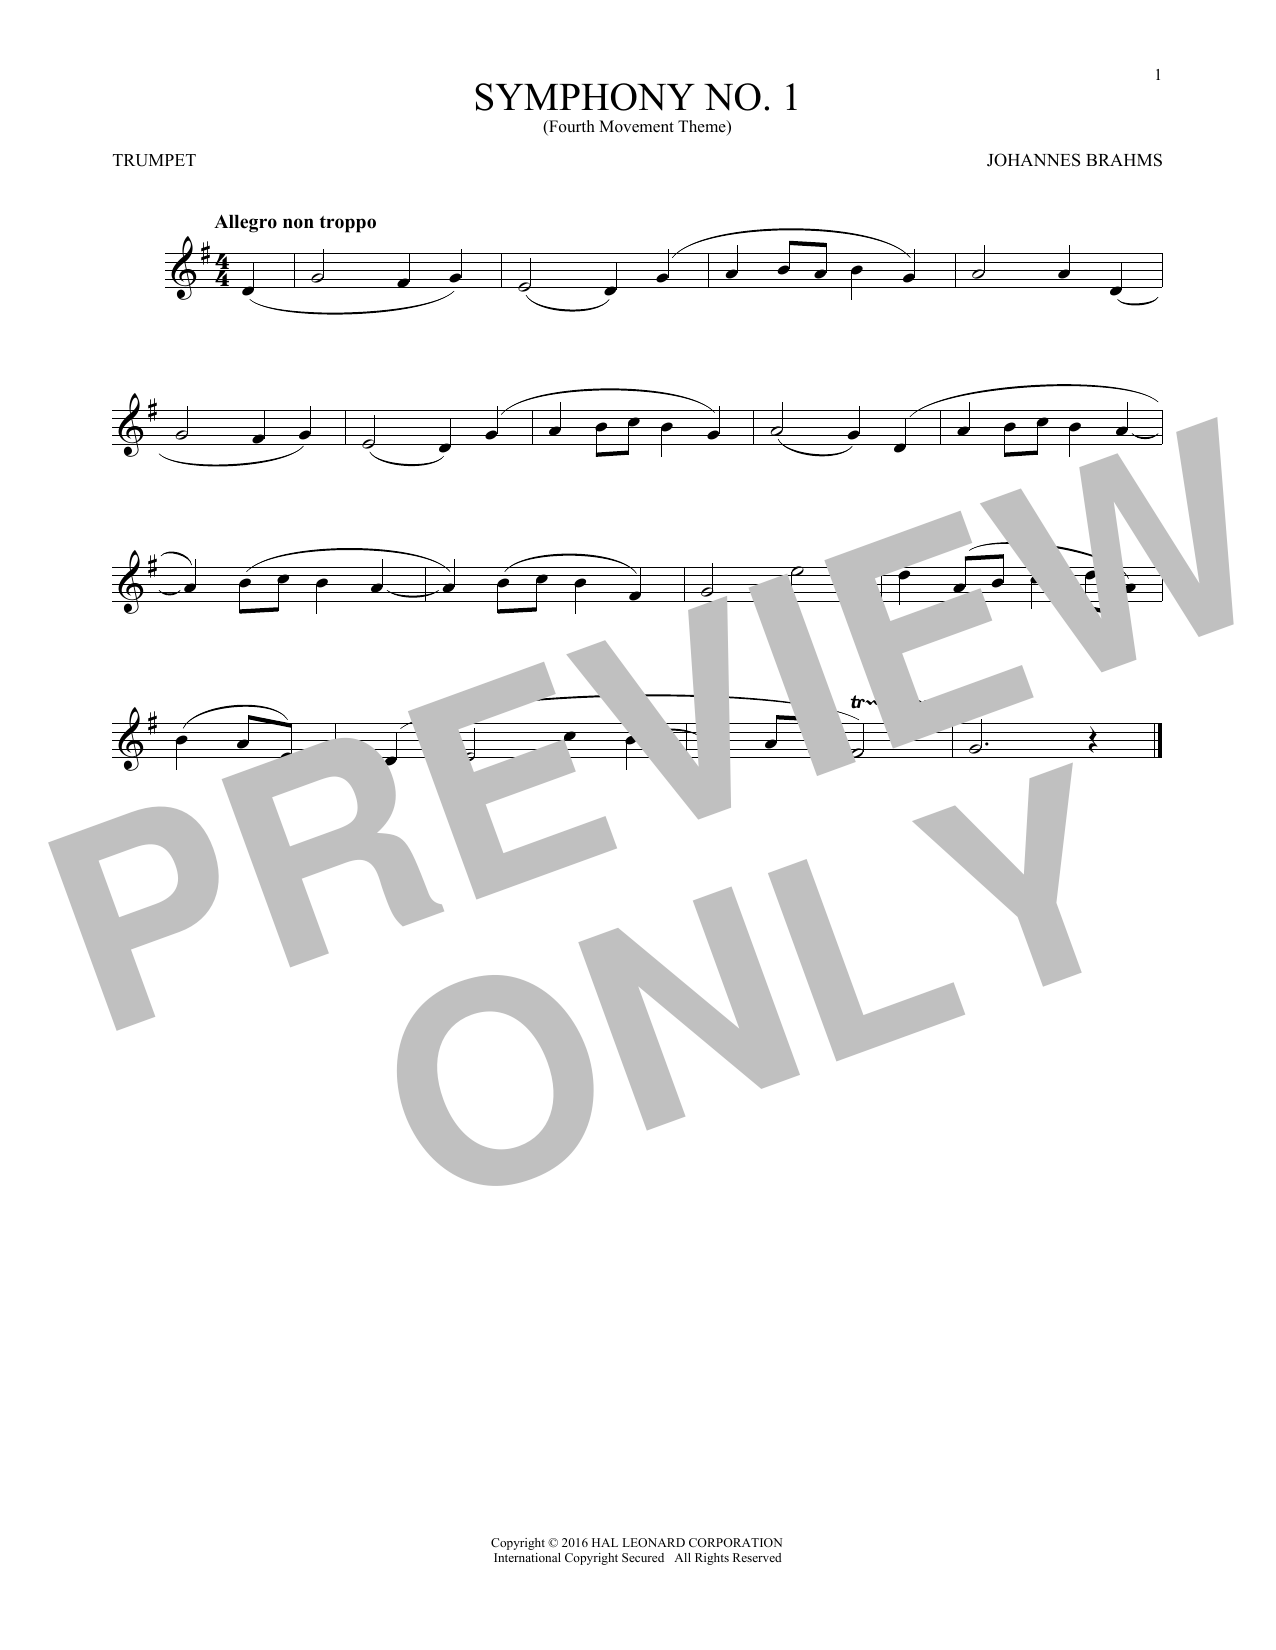 Symphony No. 1 In C Minor, Fourth Movement Excerpt (Trumpet Solo)